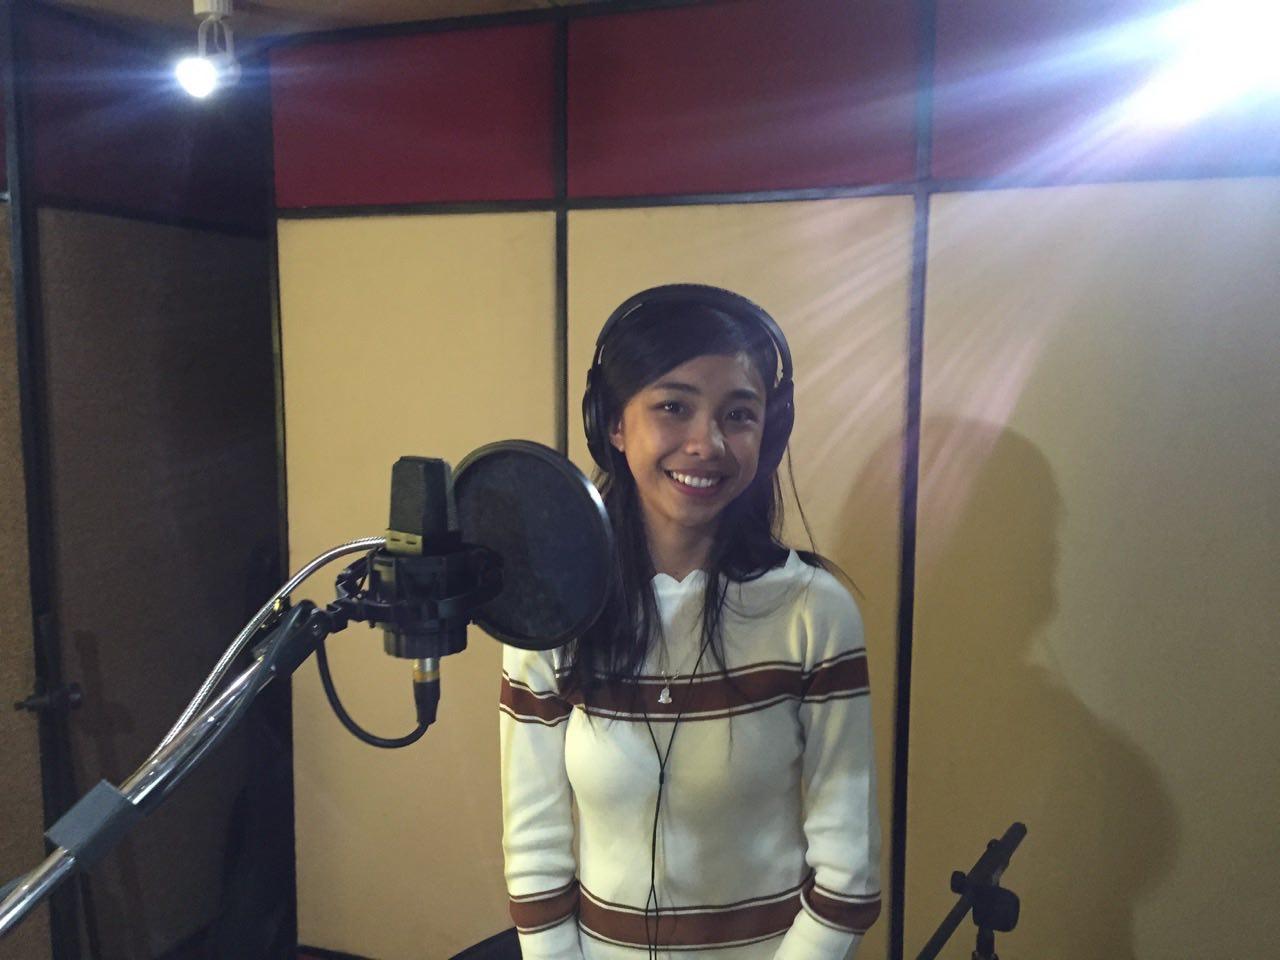 LOOK: Maymay Entrata Does Her First Recording After Signing With Star Music